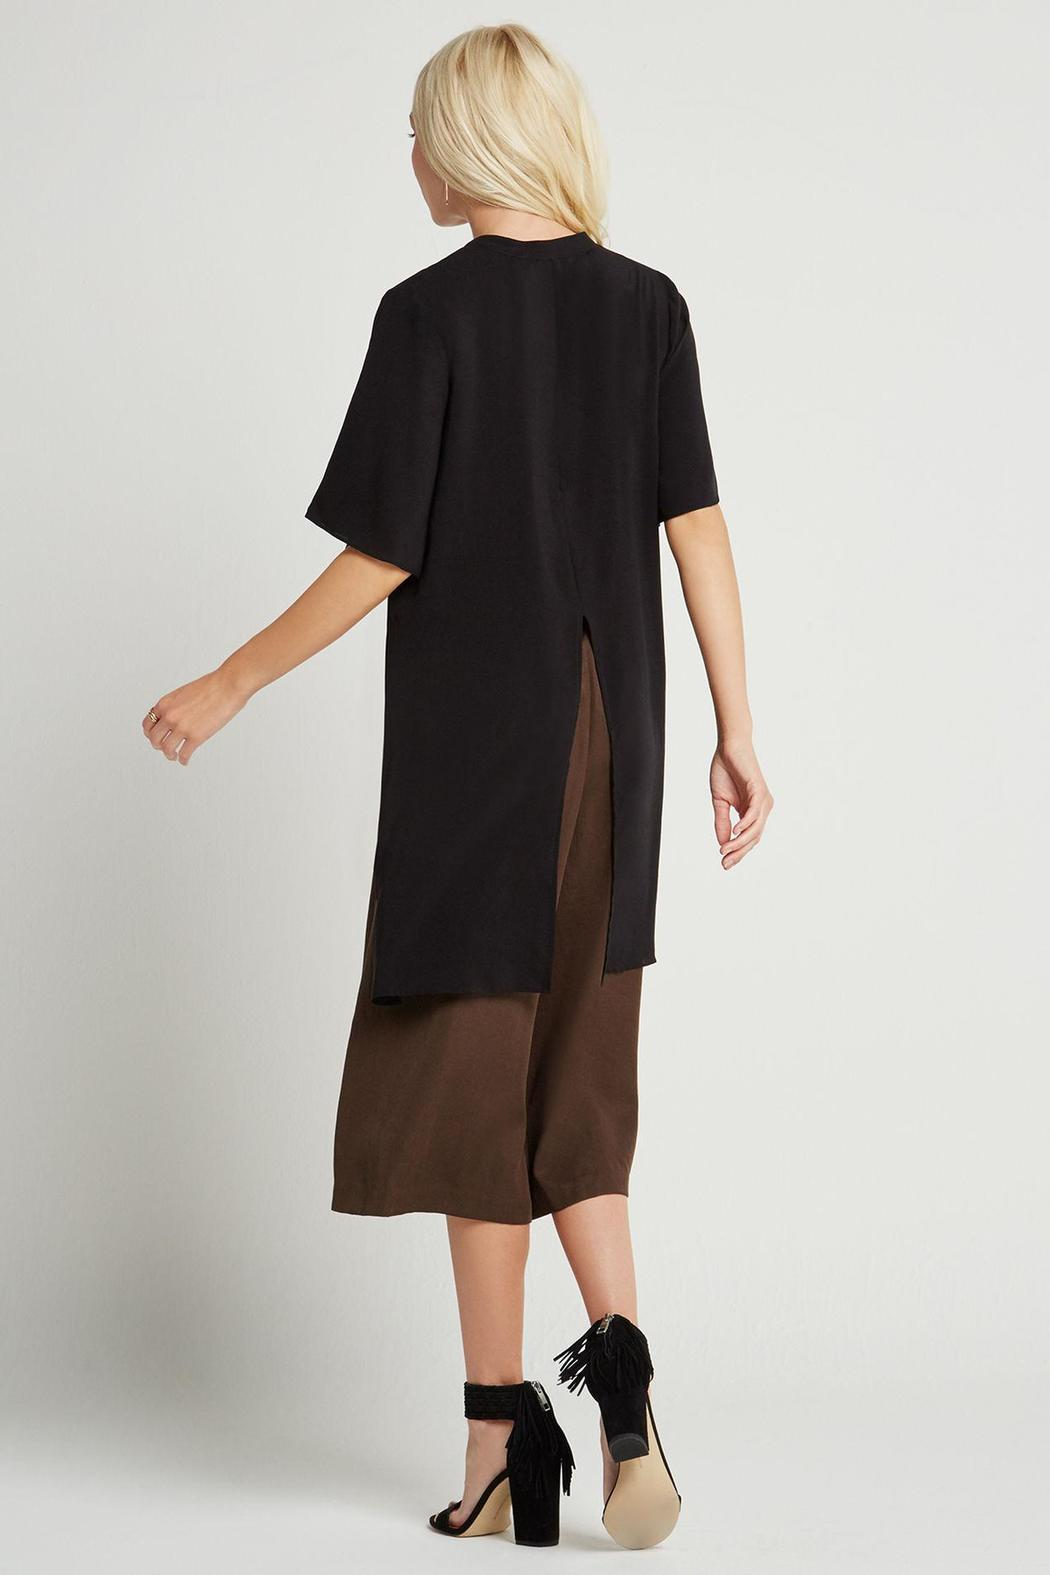 BCBGeneration Hue Short Sleeve Top - Side Cropped Image